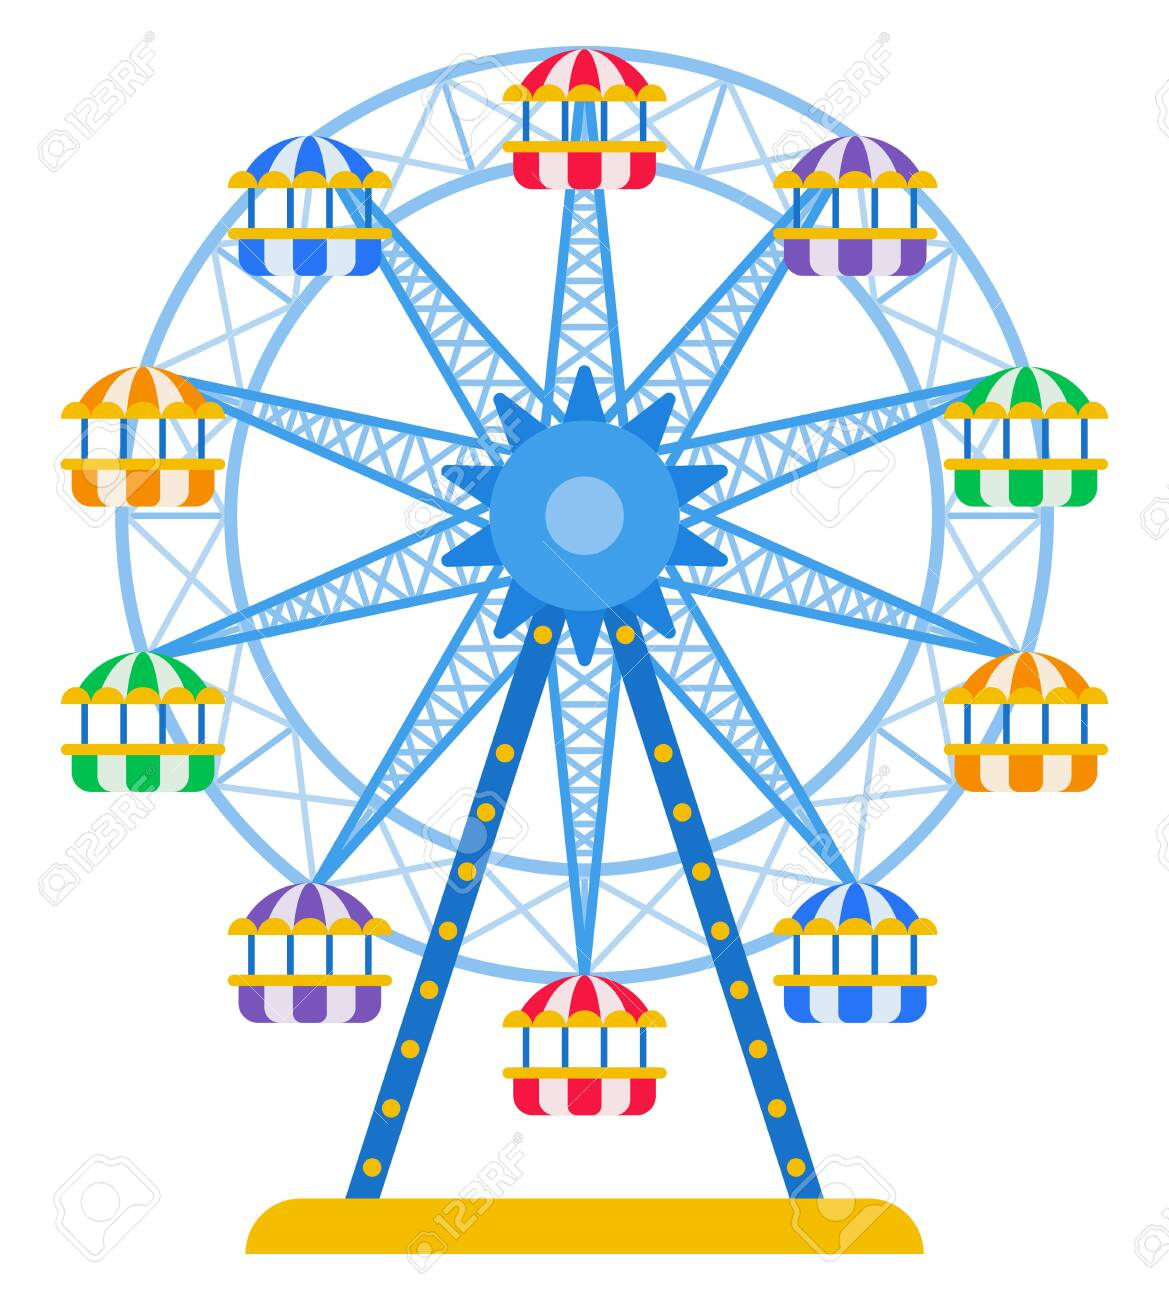 Ferris wheel with colored cabins for passengers vector icon flat isolated - 148858144